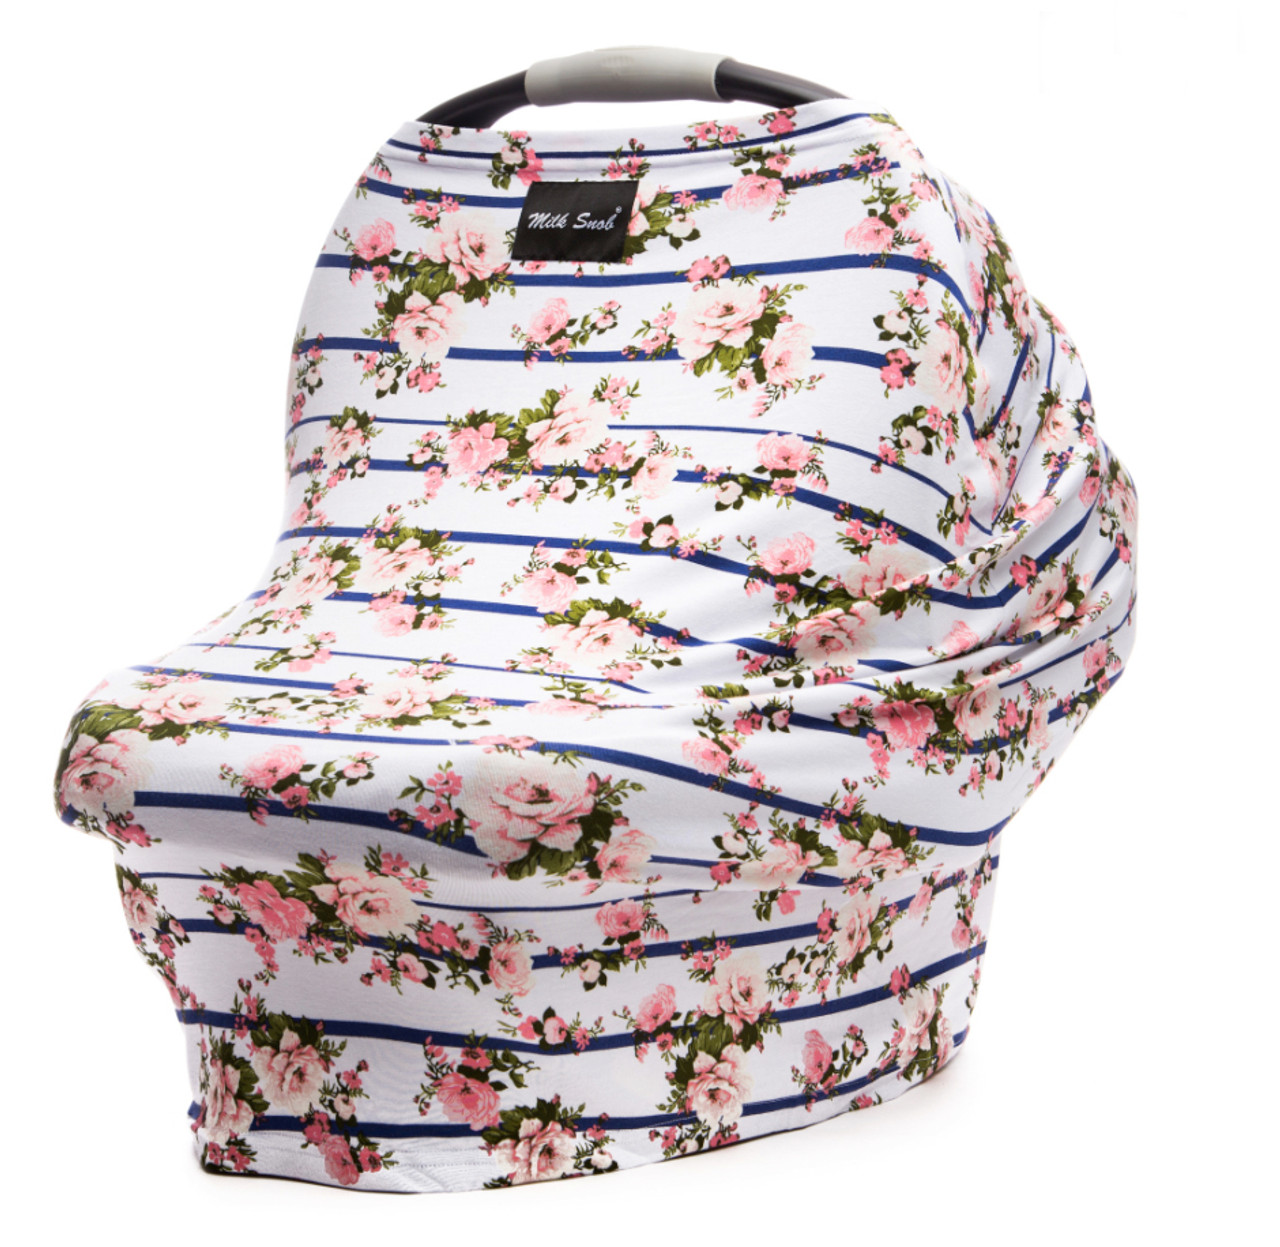 Milk Snob Car Seat Cover Hampton Rose